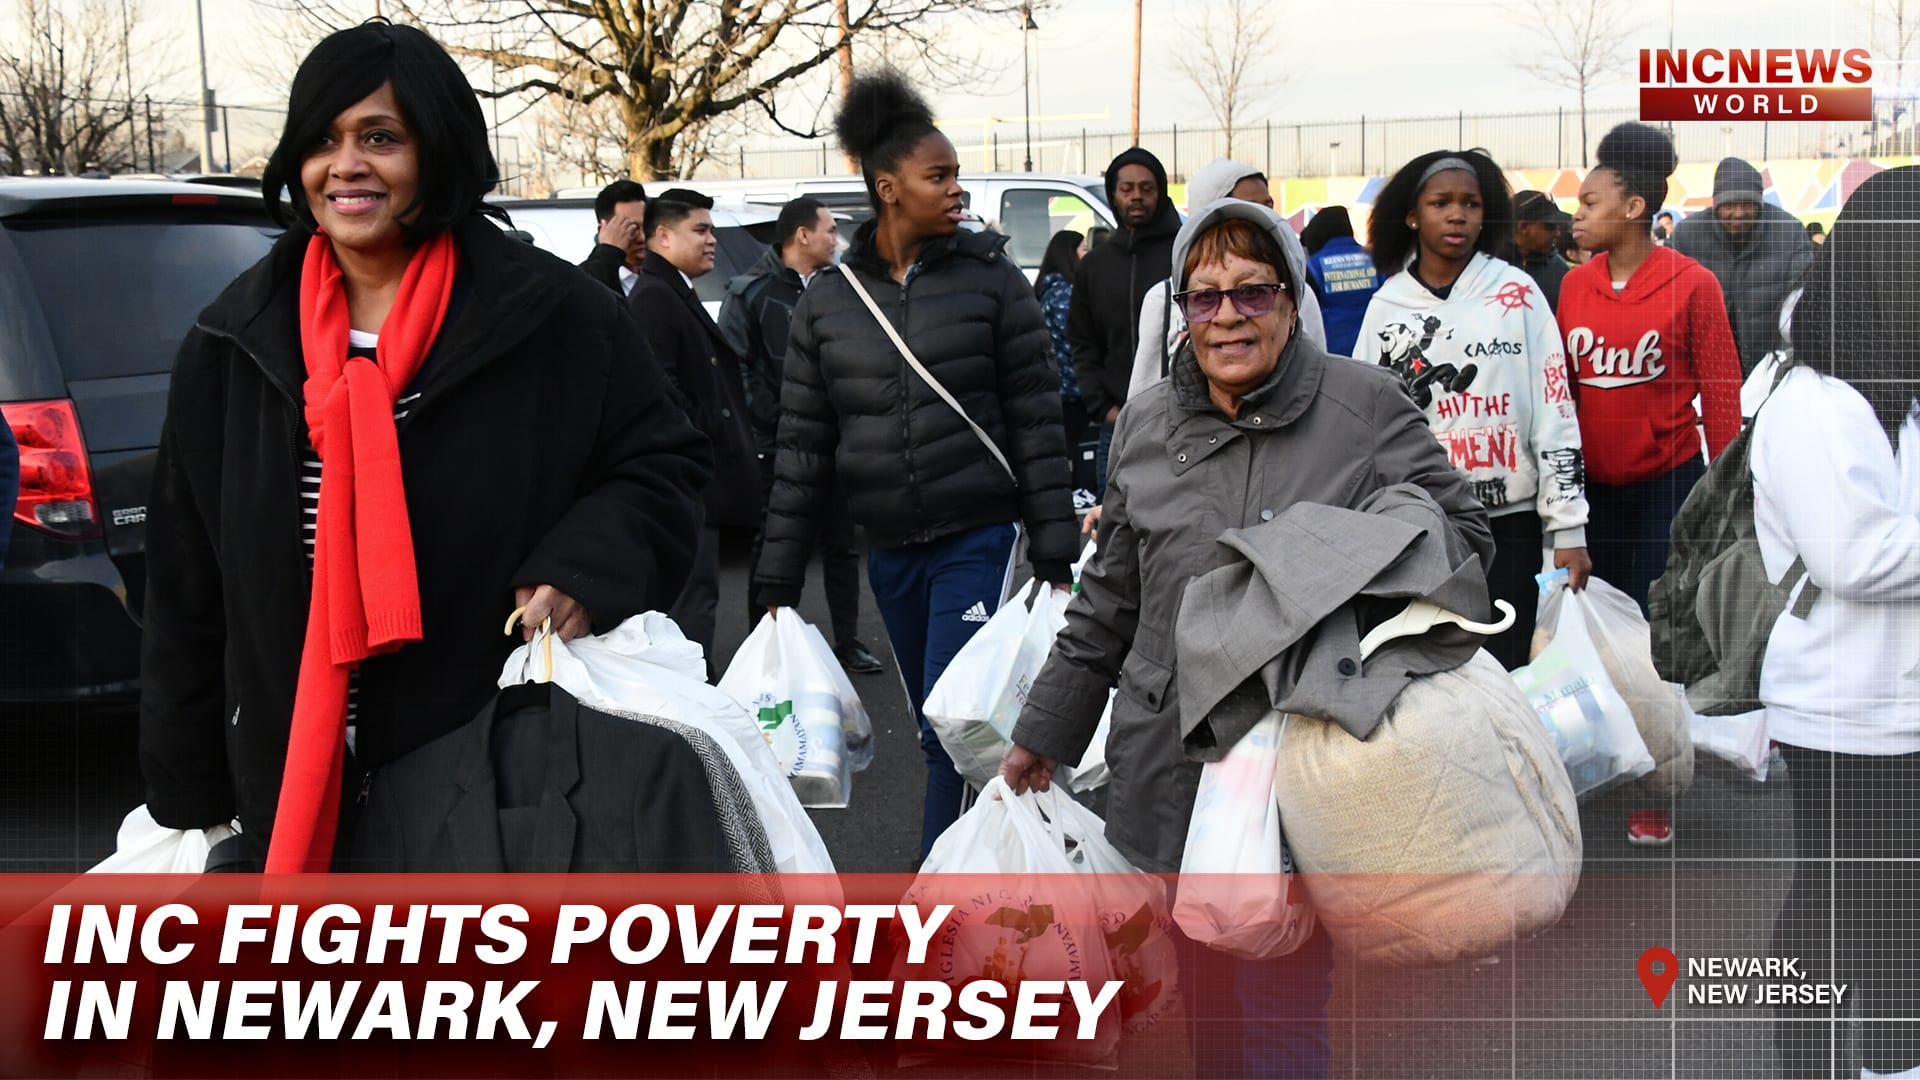 INC Fights Poverty in Newark, New Jersey